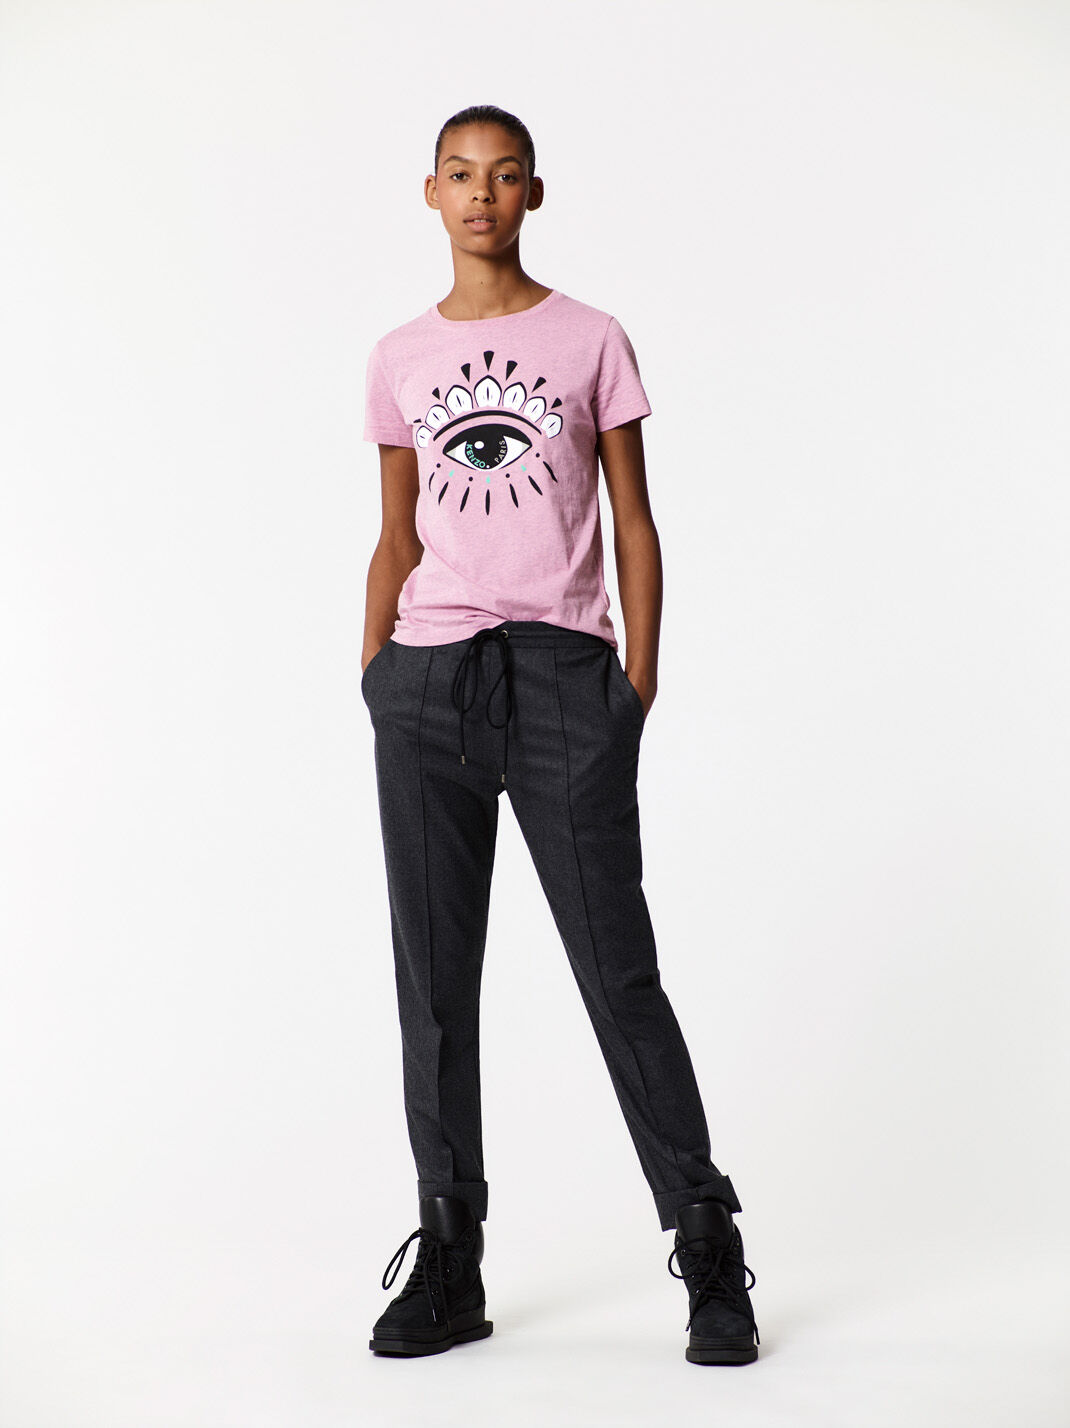 Cheap Kenzo Eye T Shirt Womens